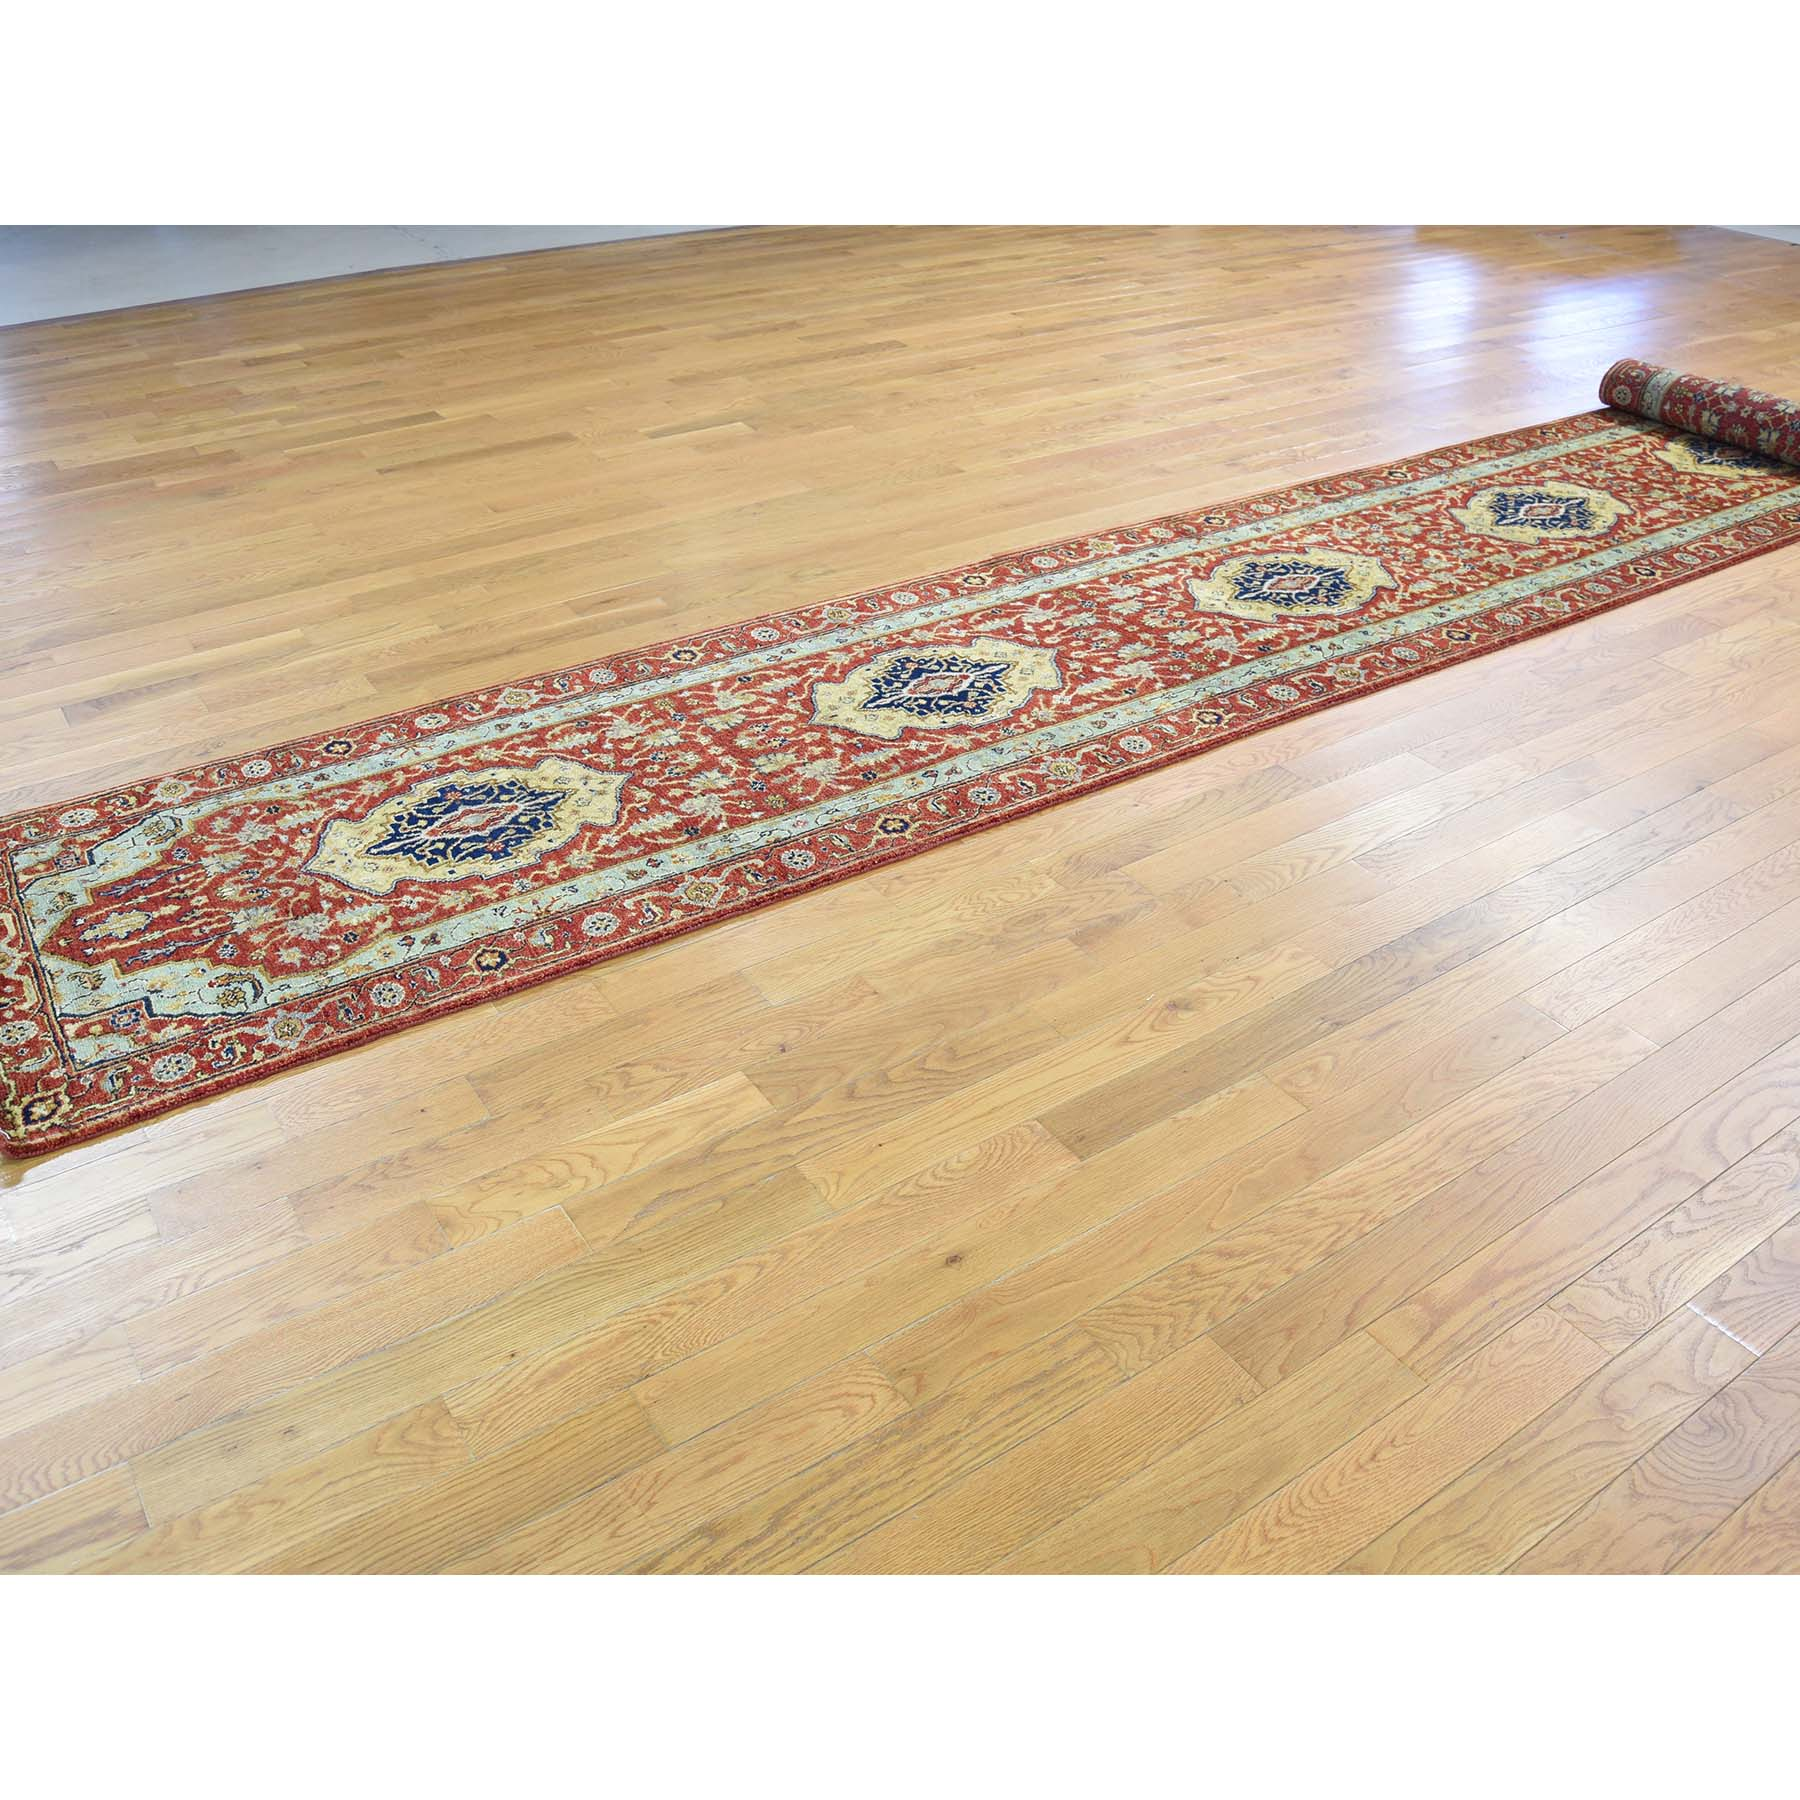 2-7 x17-7  Antiqued Heriz Re-Creation Pure Wool XL Runner Hand-Knotted Oriental Rug